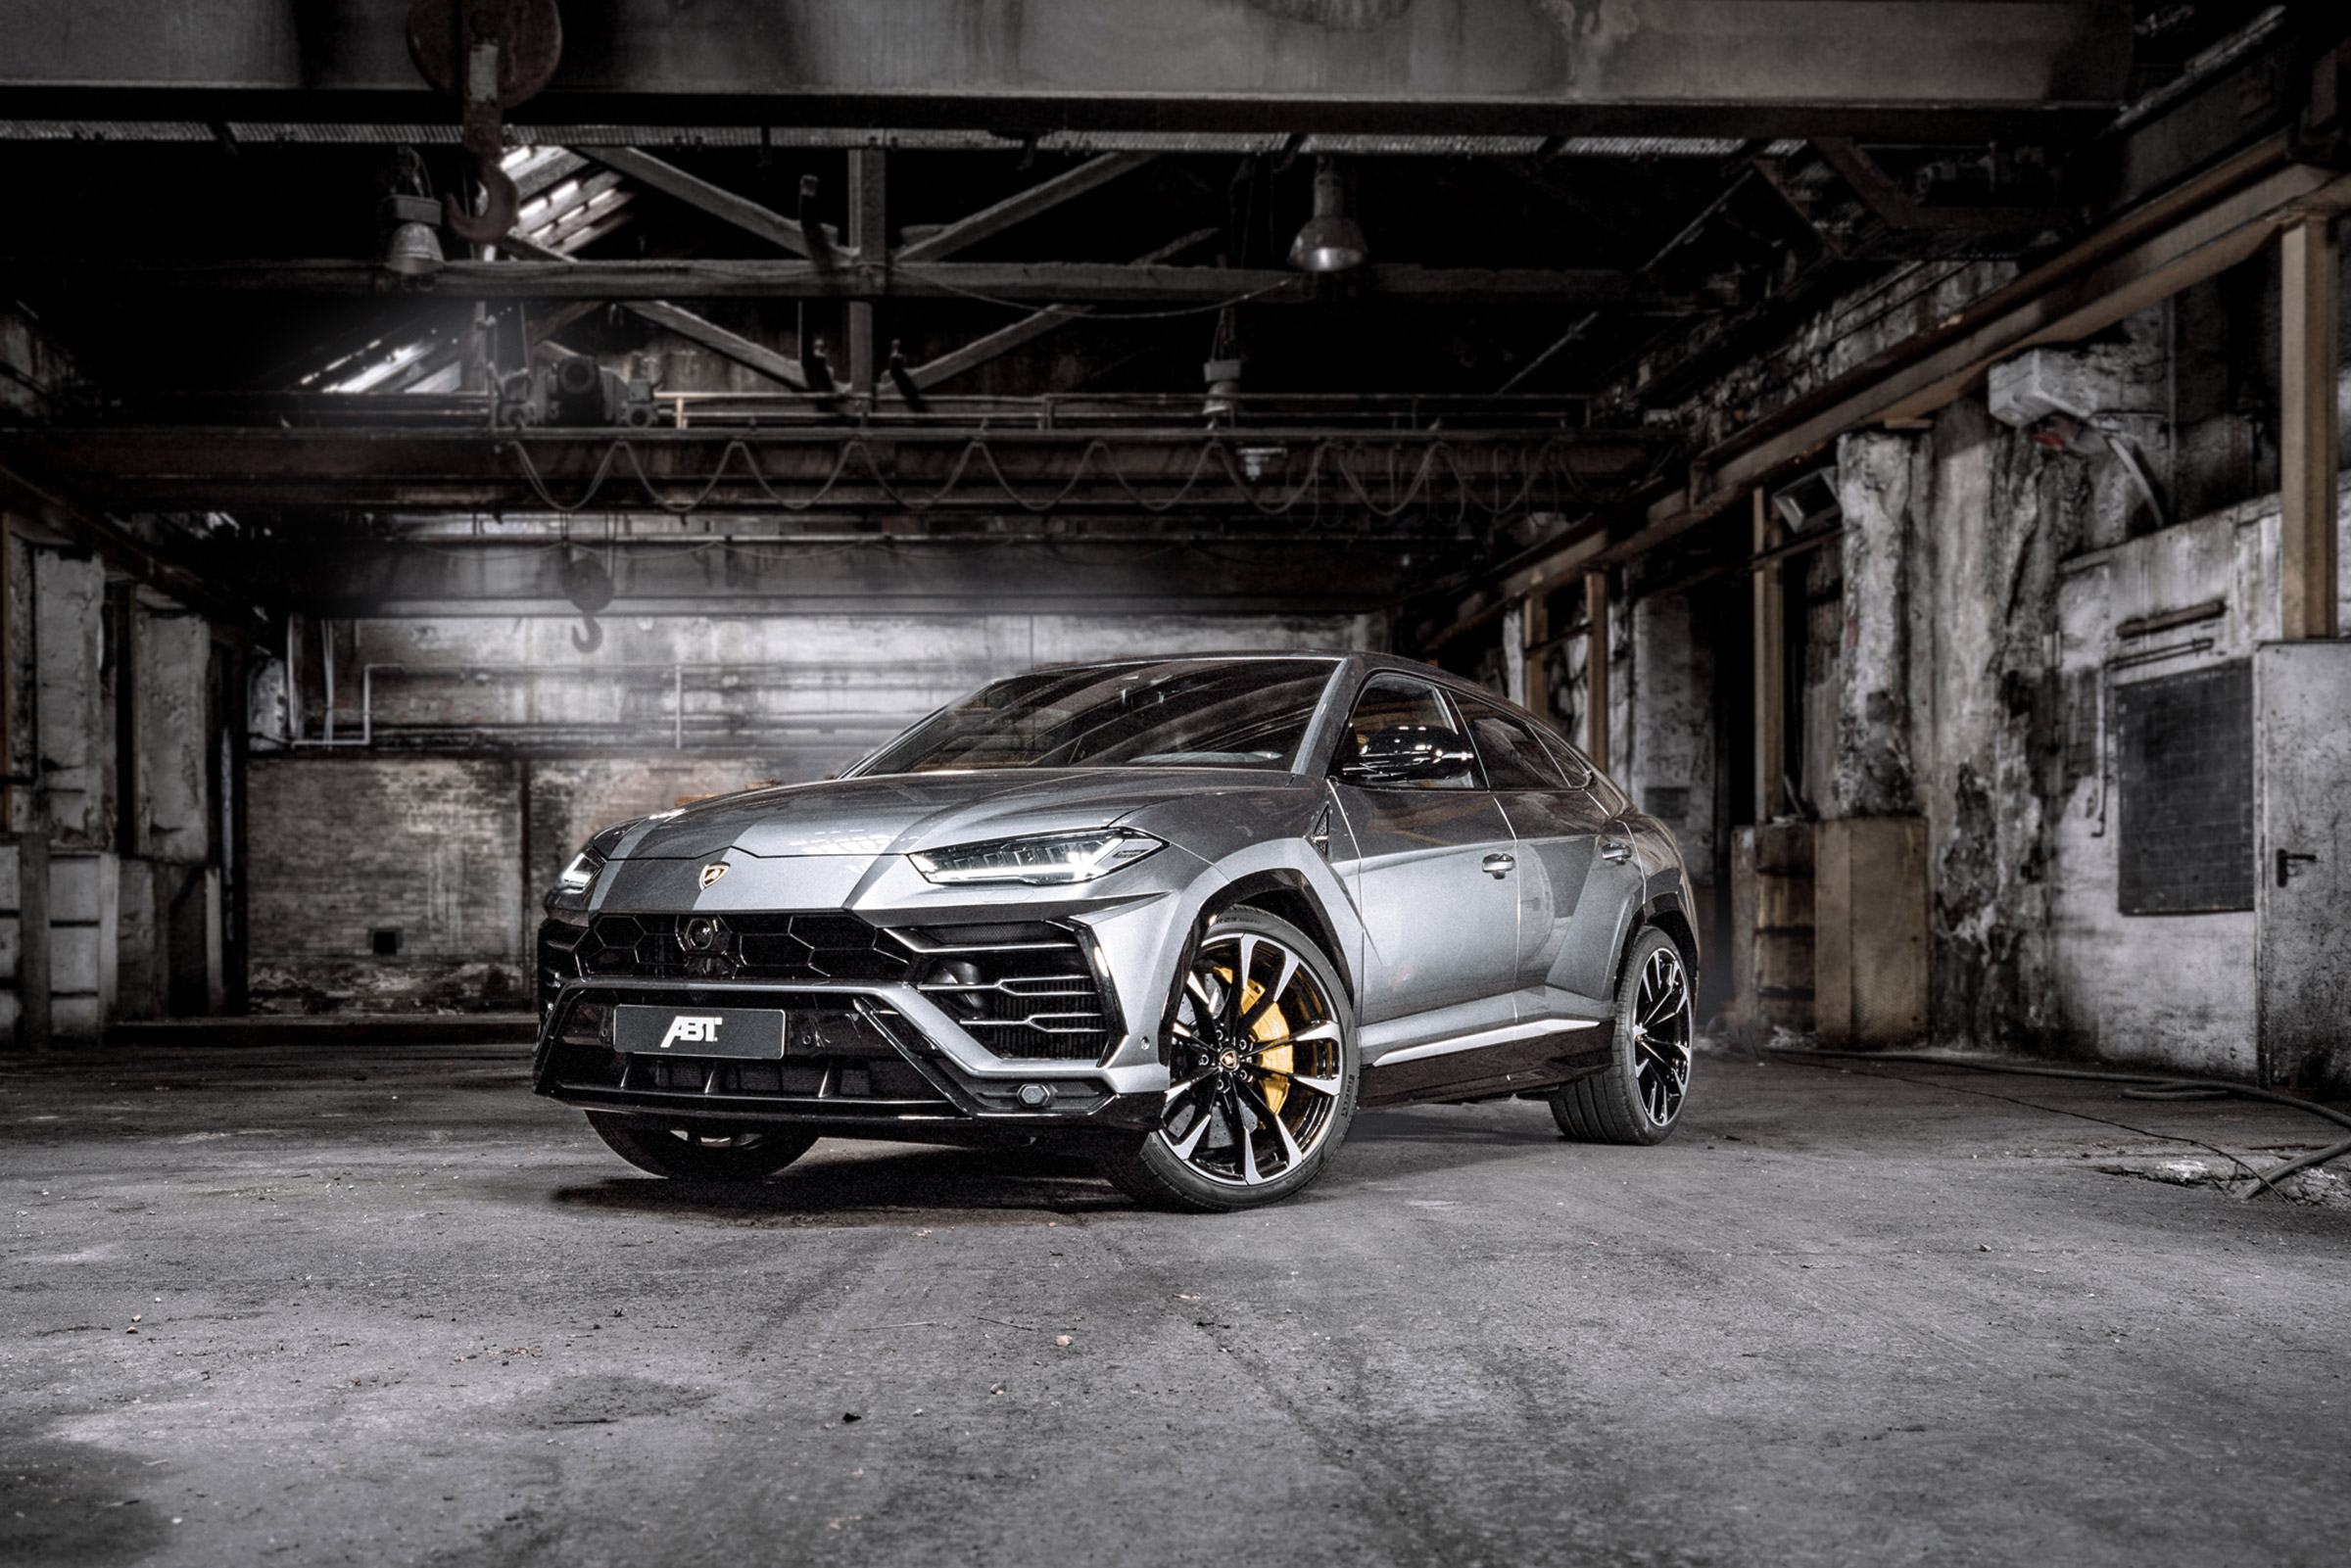 Lamborghini Urus review – is this the first super-SUV? | Evo